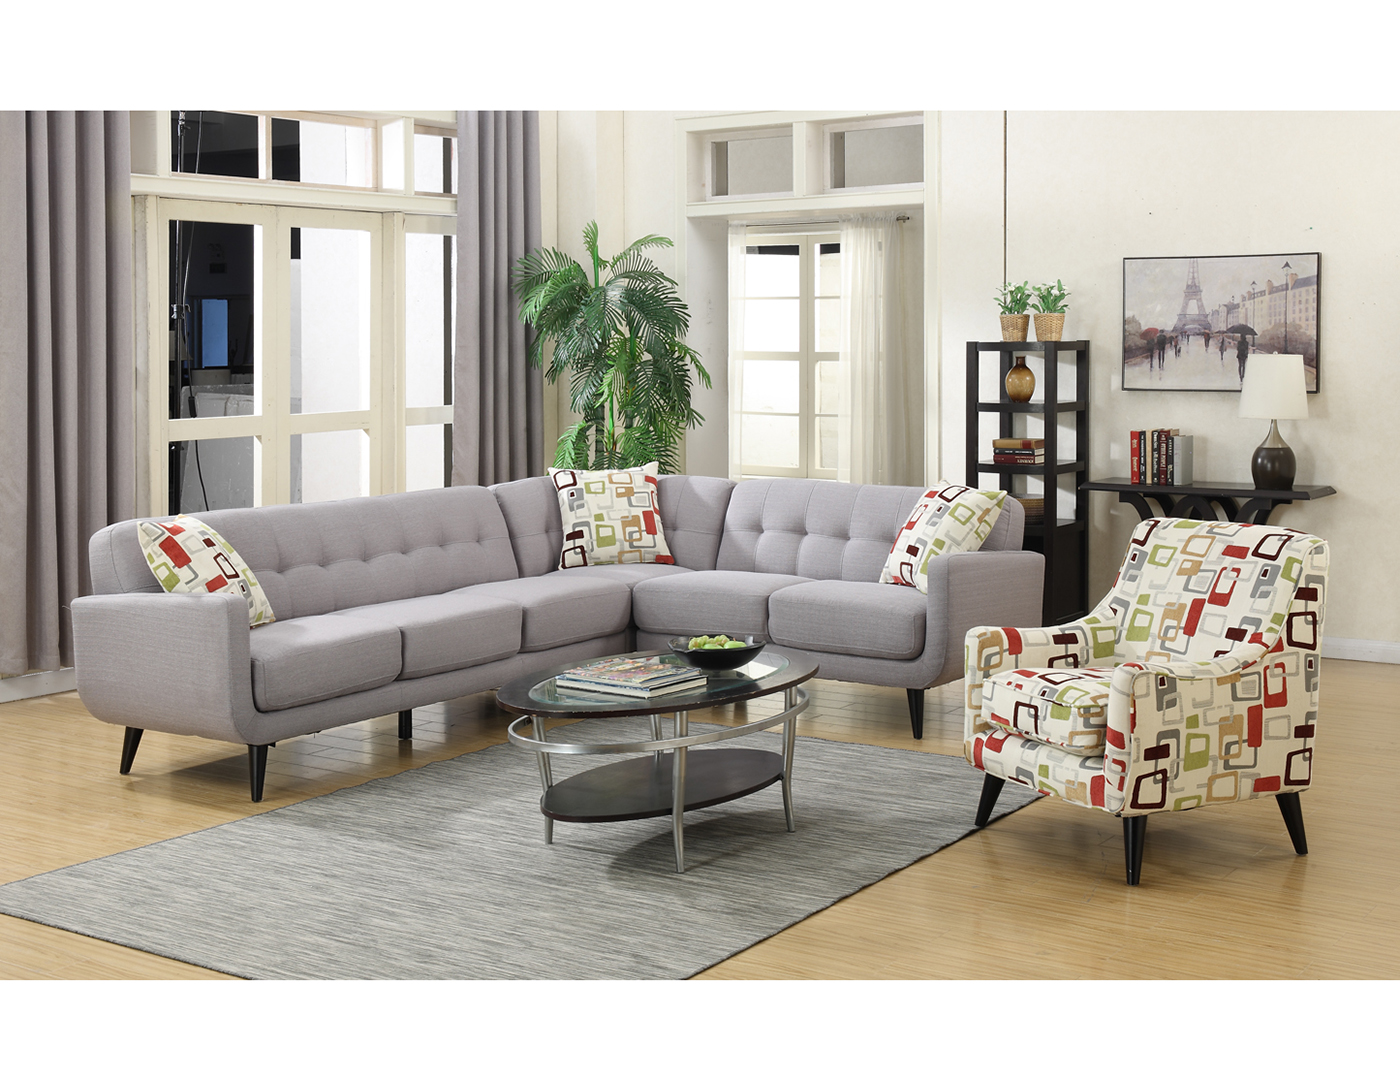 Hubbard 3-pc. Sectional